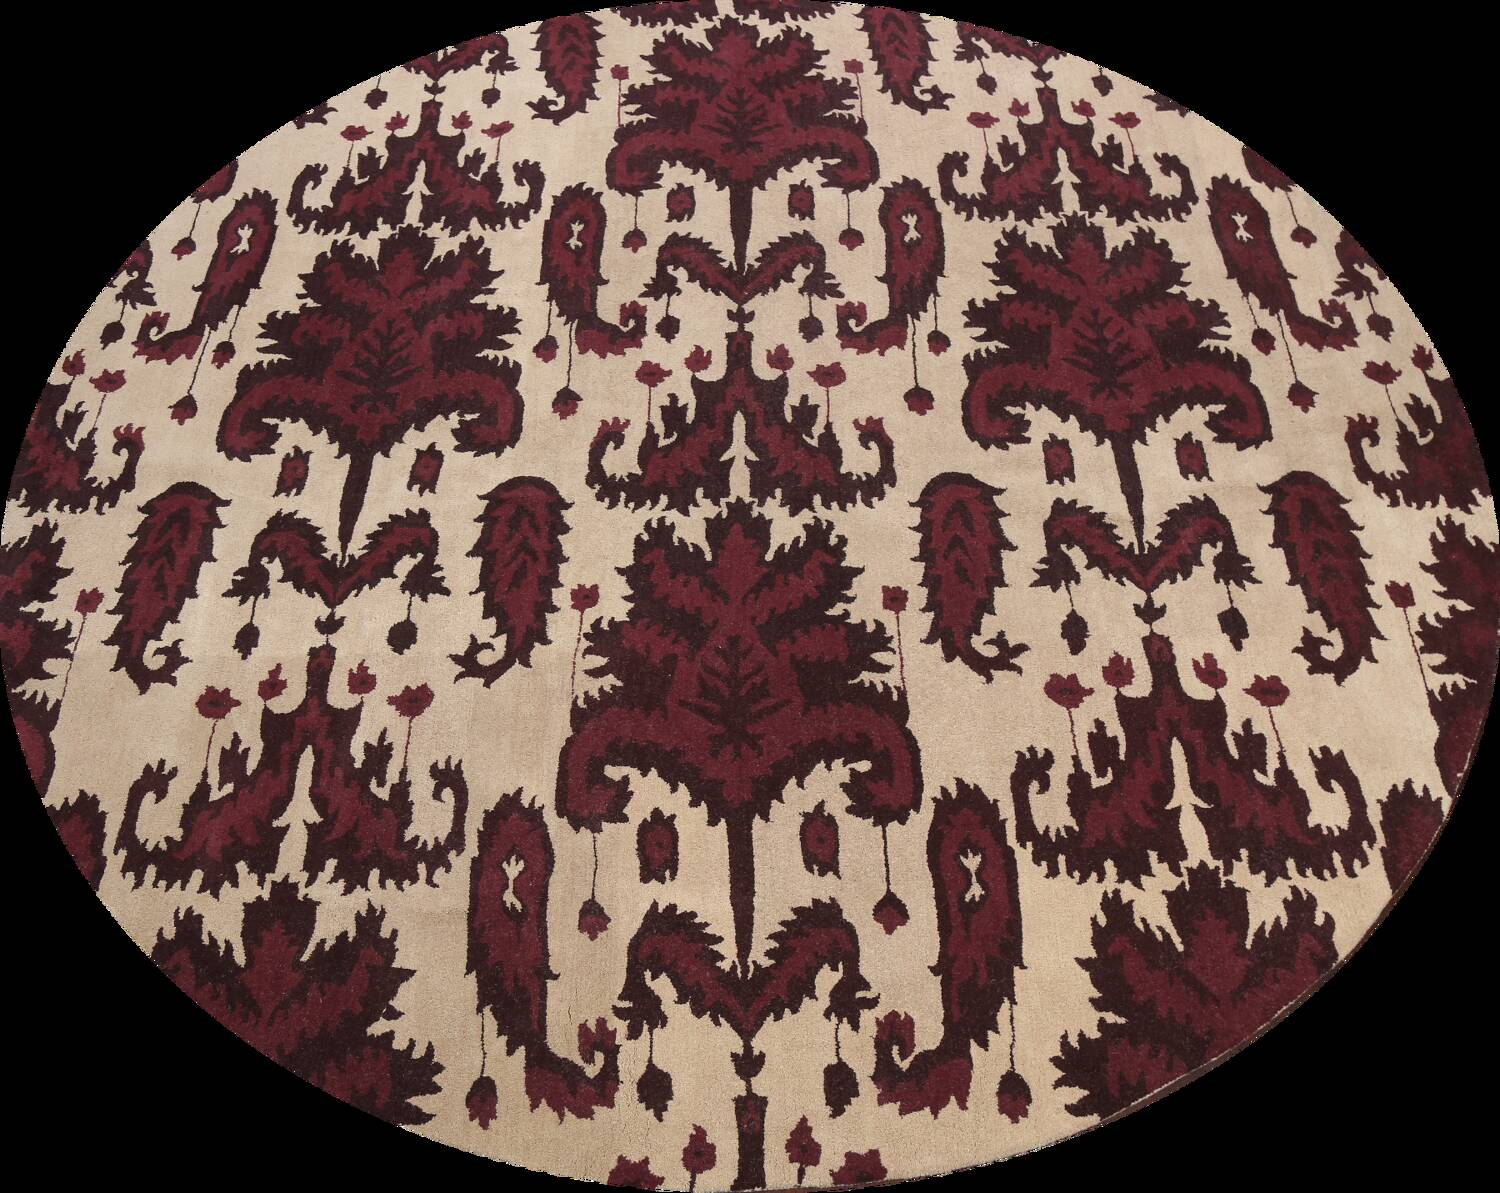 Abstract Round Rug 12x12 image 1